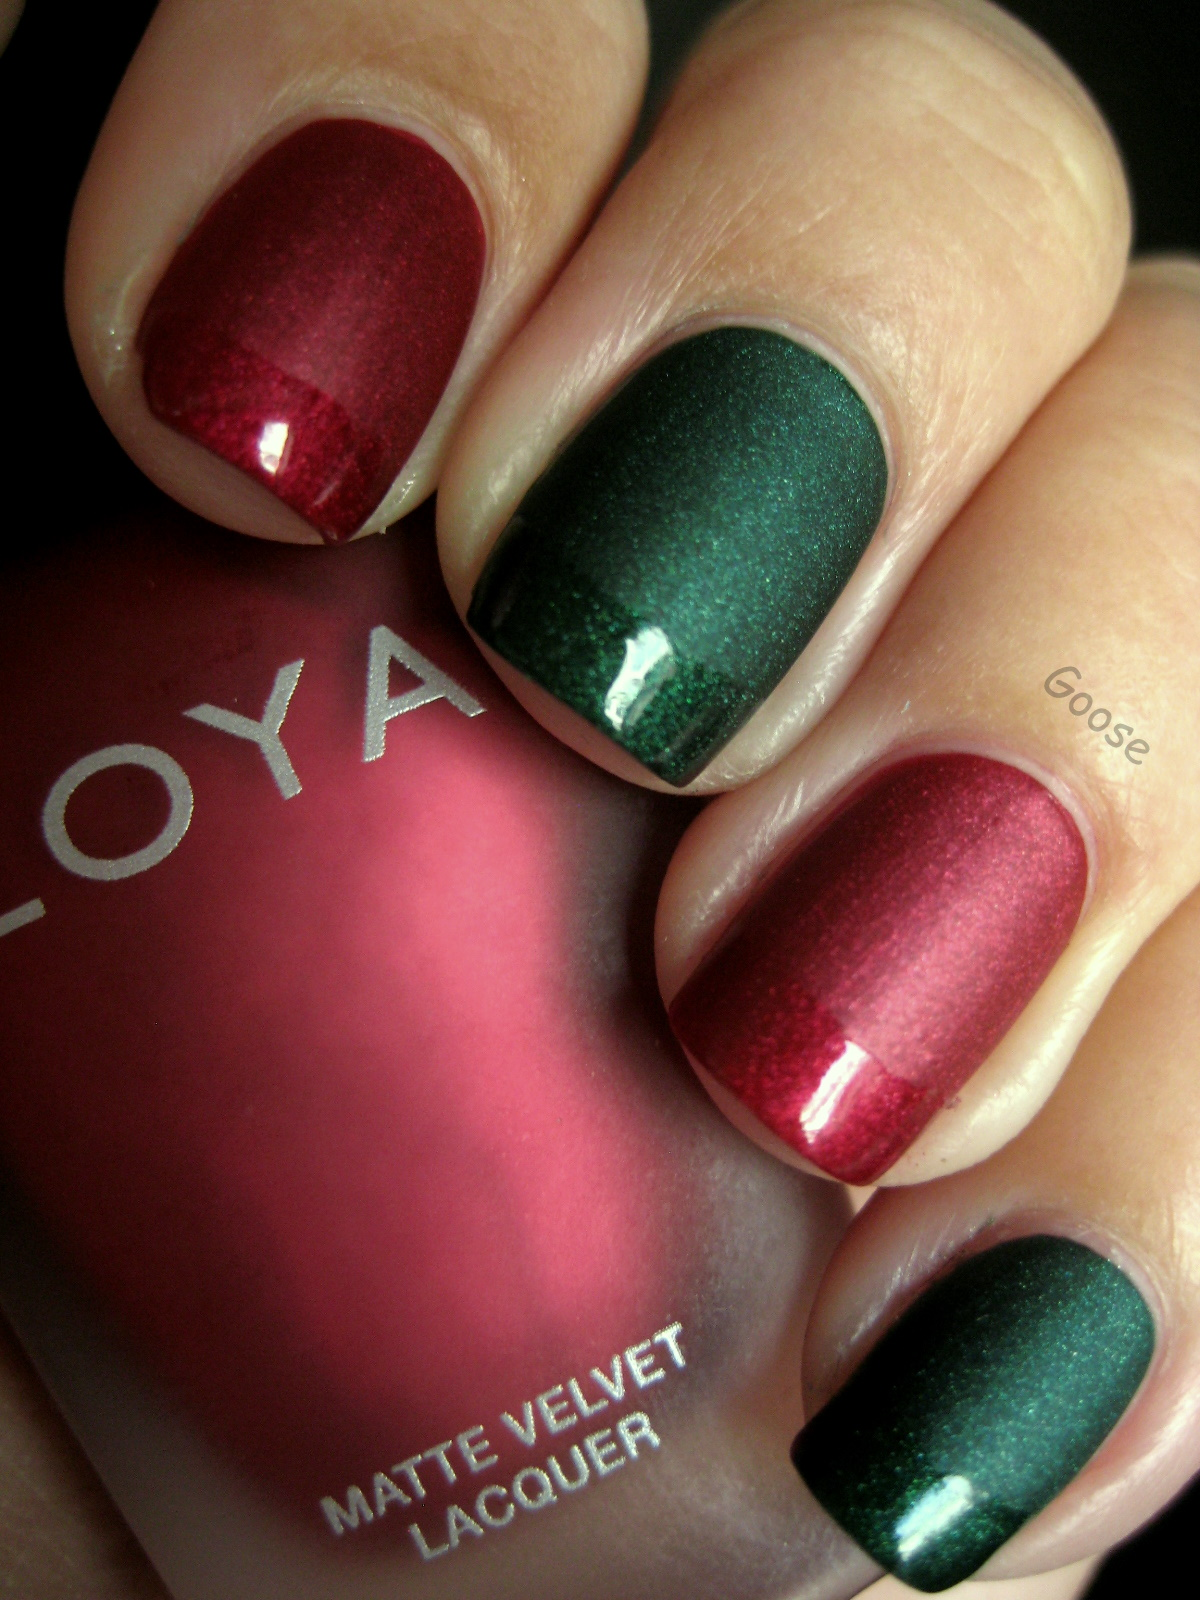 Goose\'s Glitter: The 12 Days of Christmas Nails: Day 4 - Red and ...